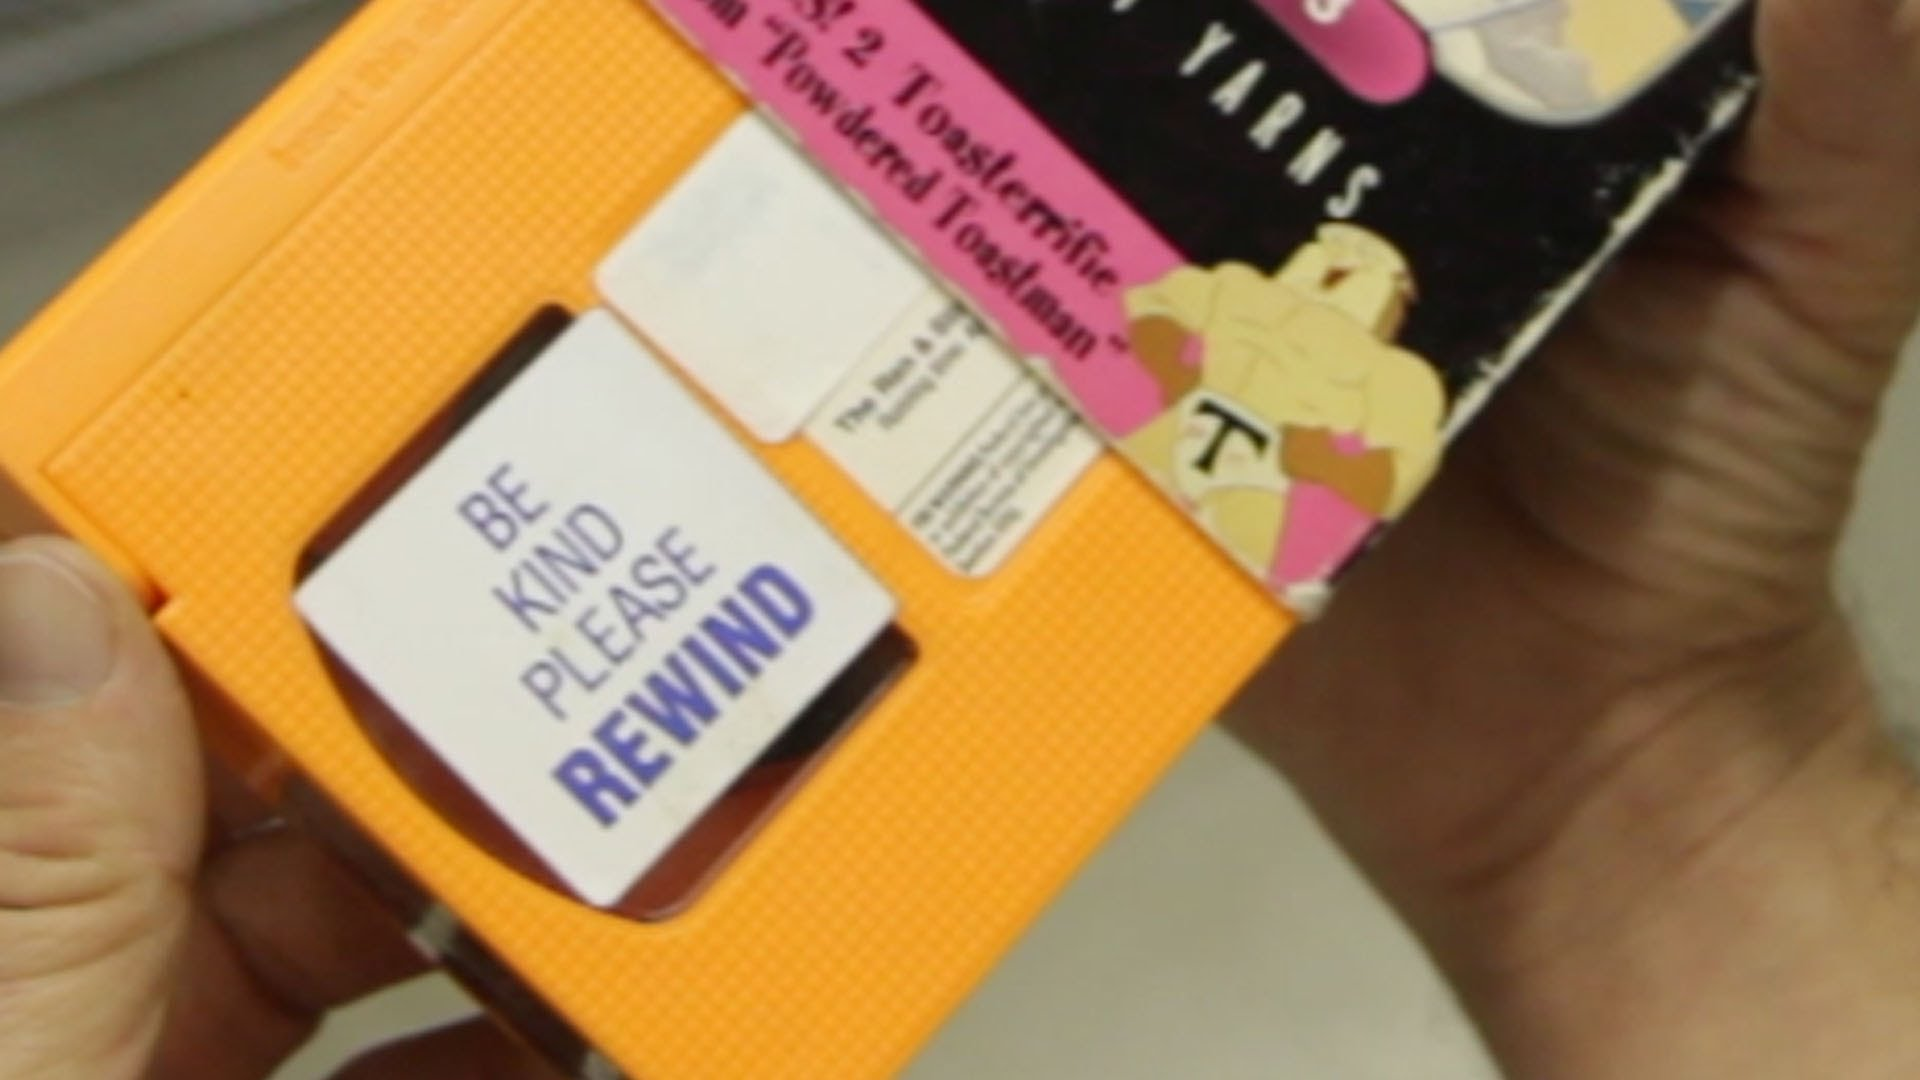 Old Video Stores Like Blockbuster Explained to the Kids of Today